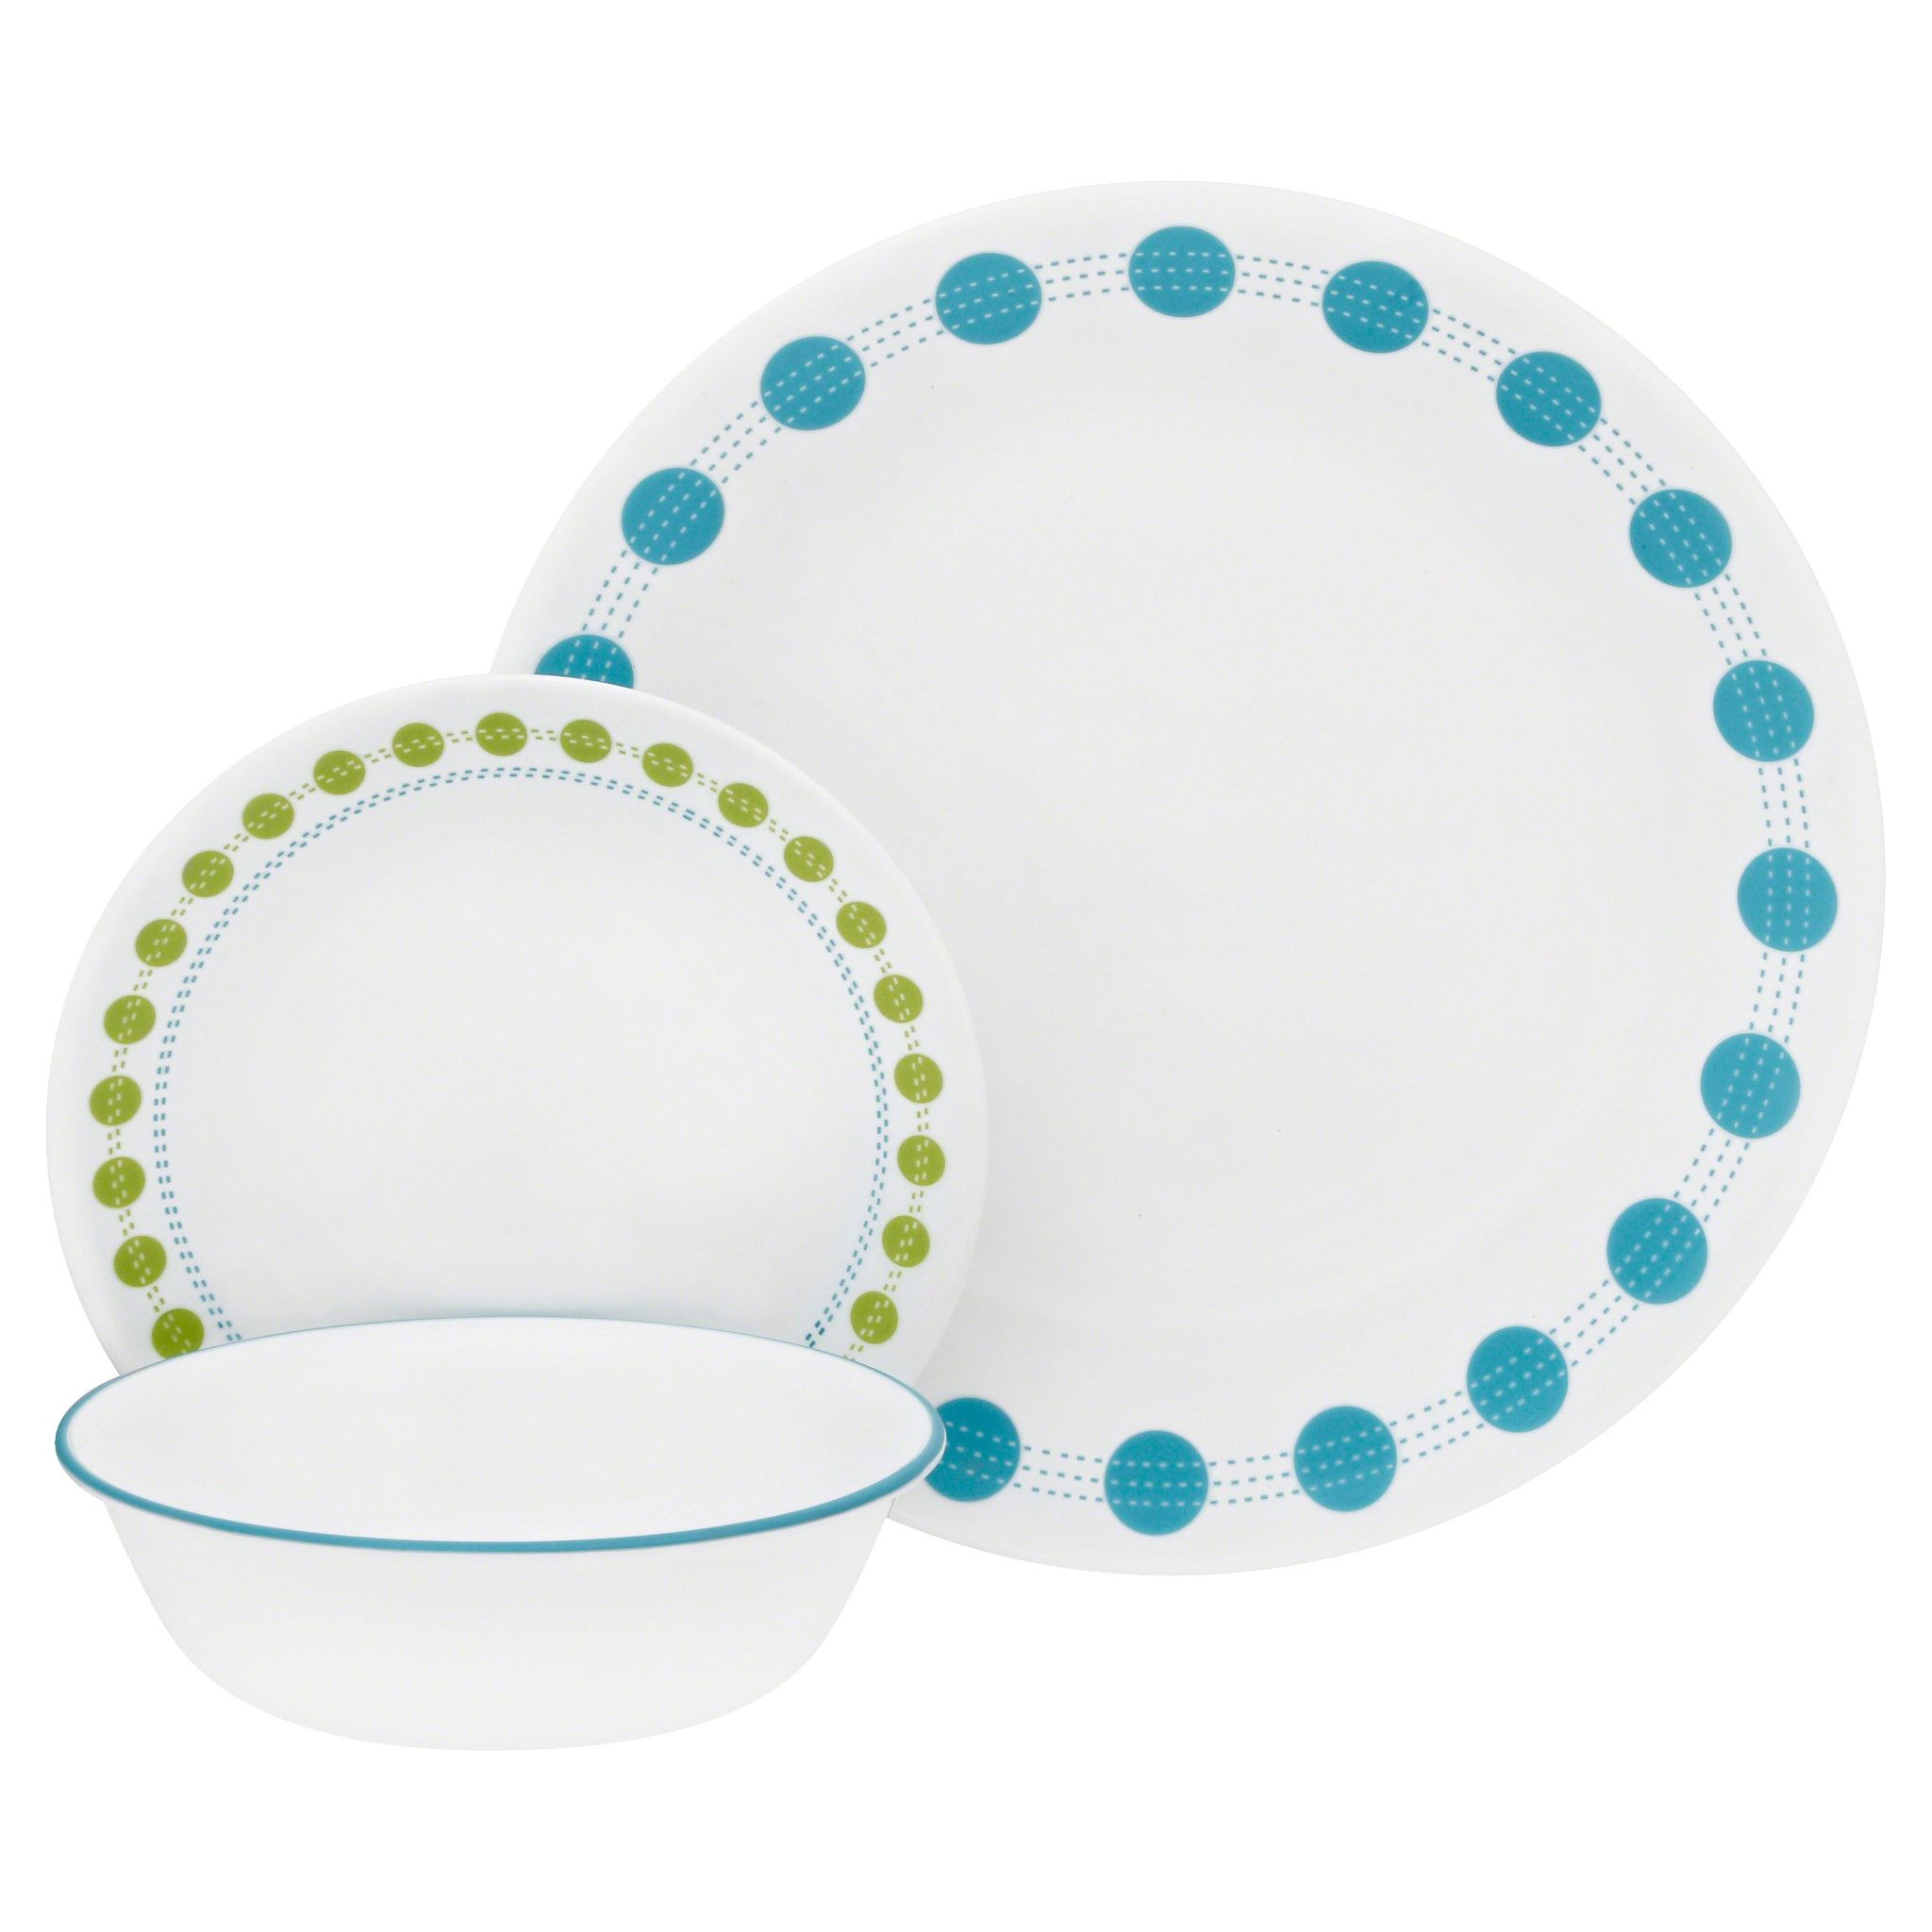 Corelle_Livingware_South_Beach_18pc_Dinnerware_Set